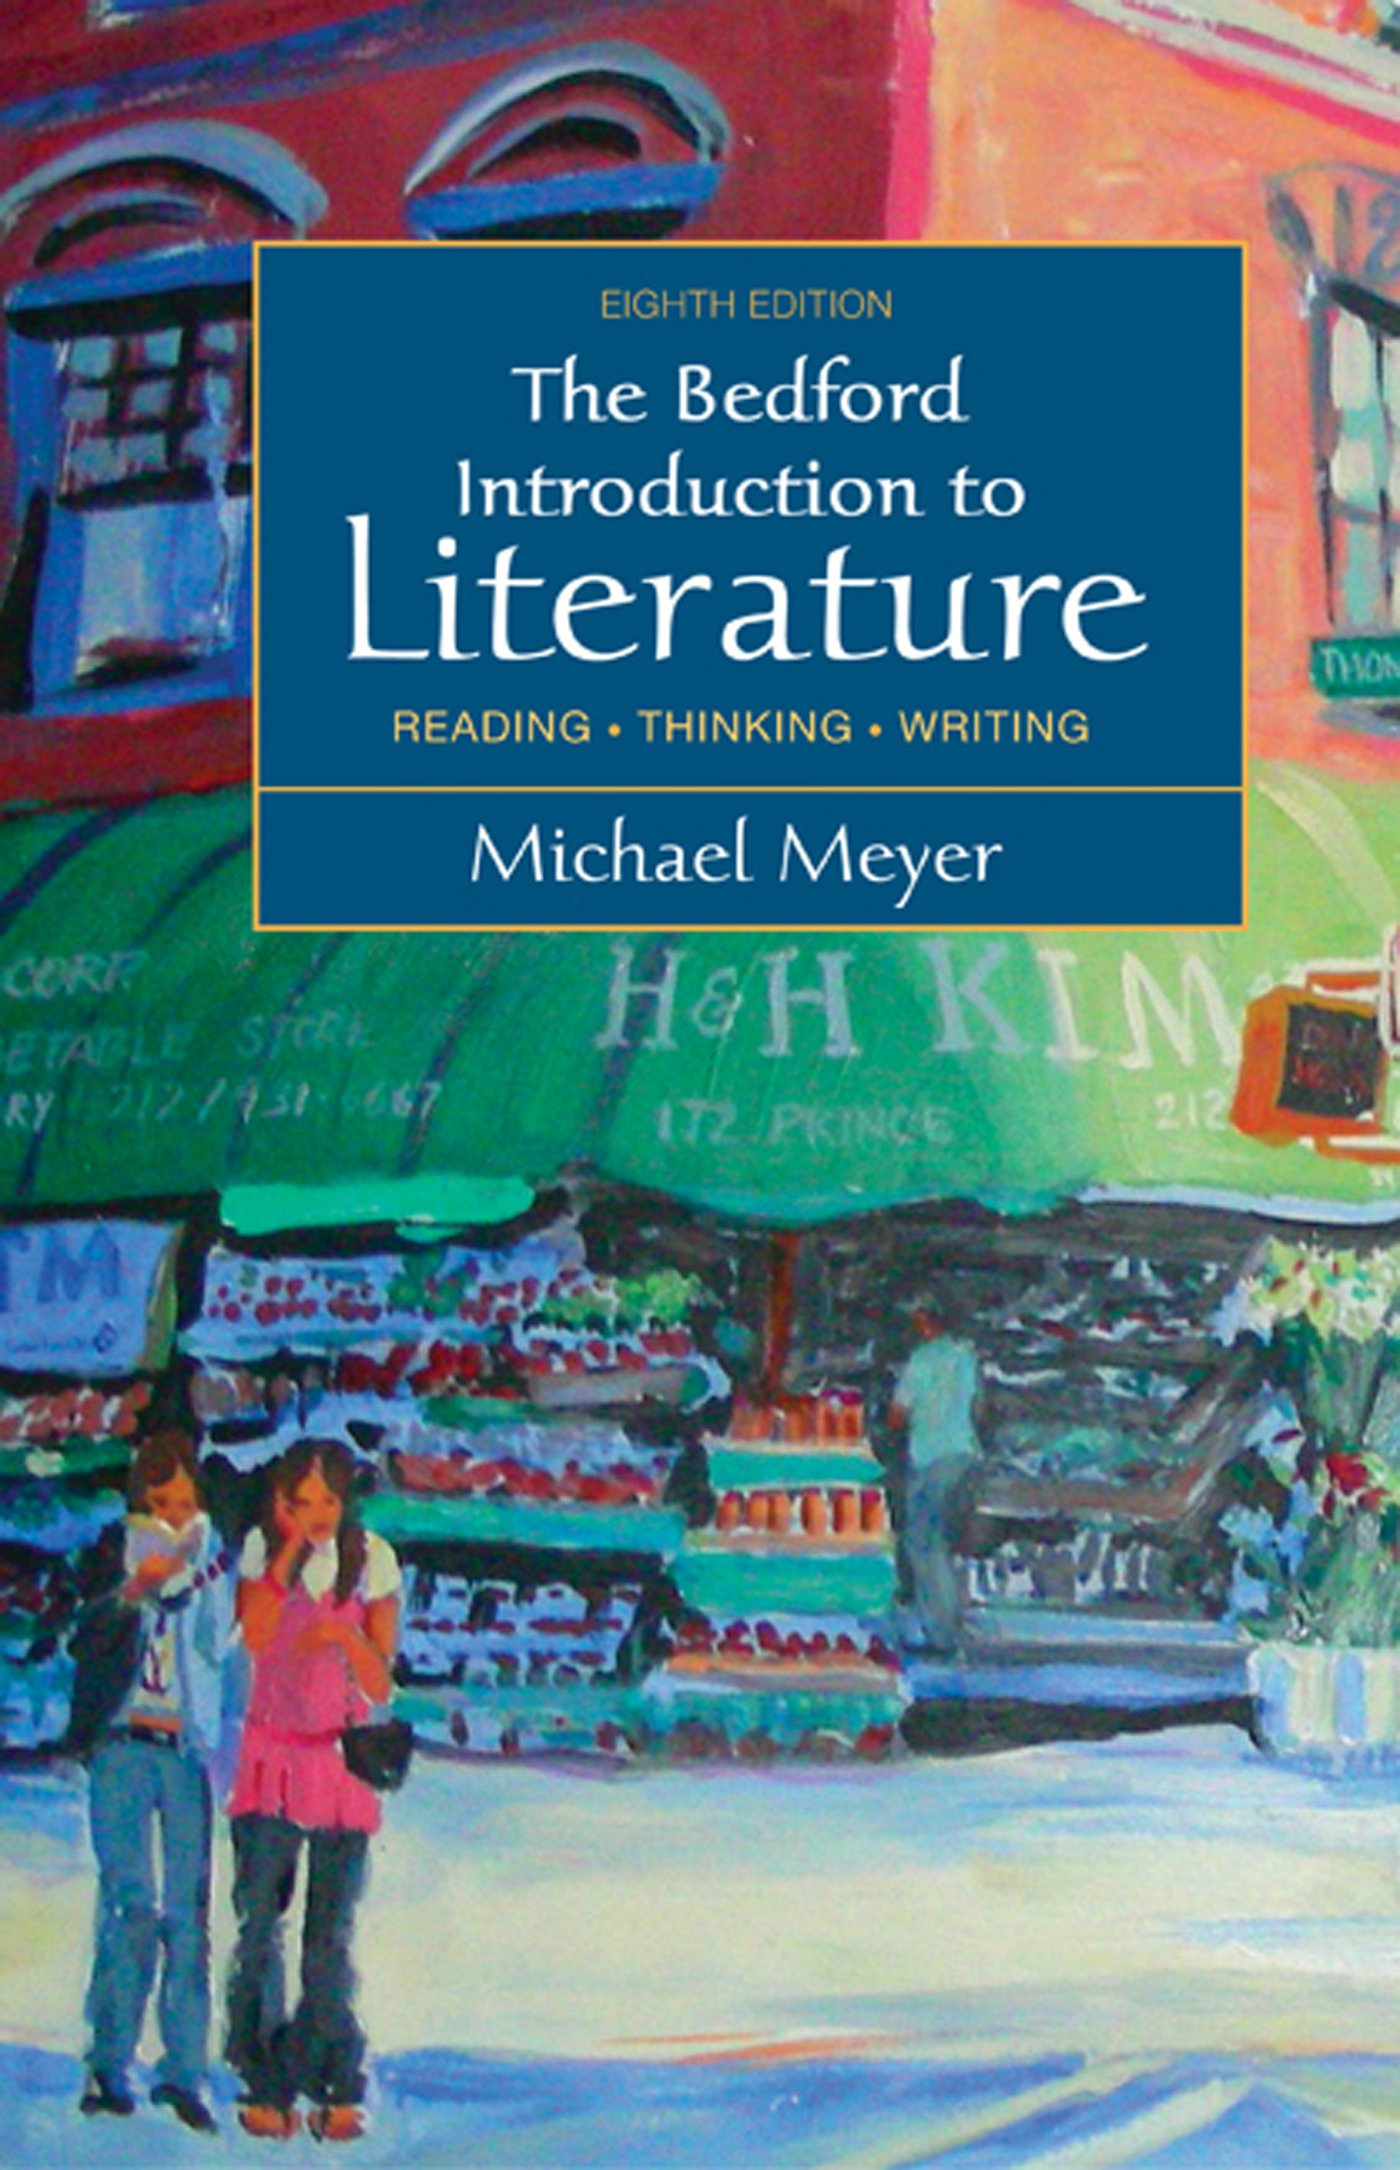 Reading to and literature pdf writing an introduction